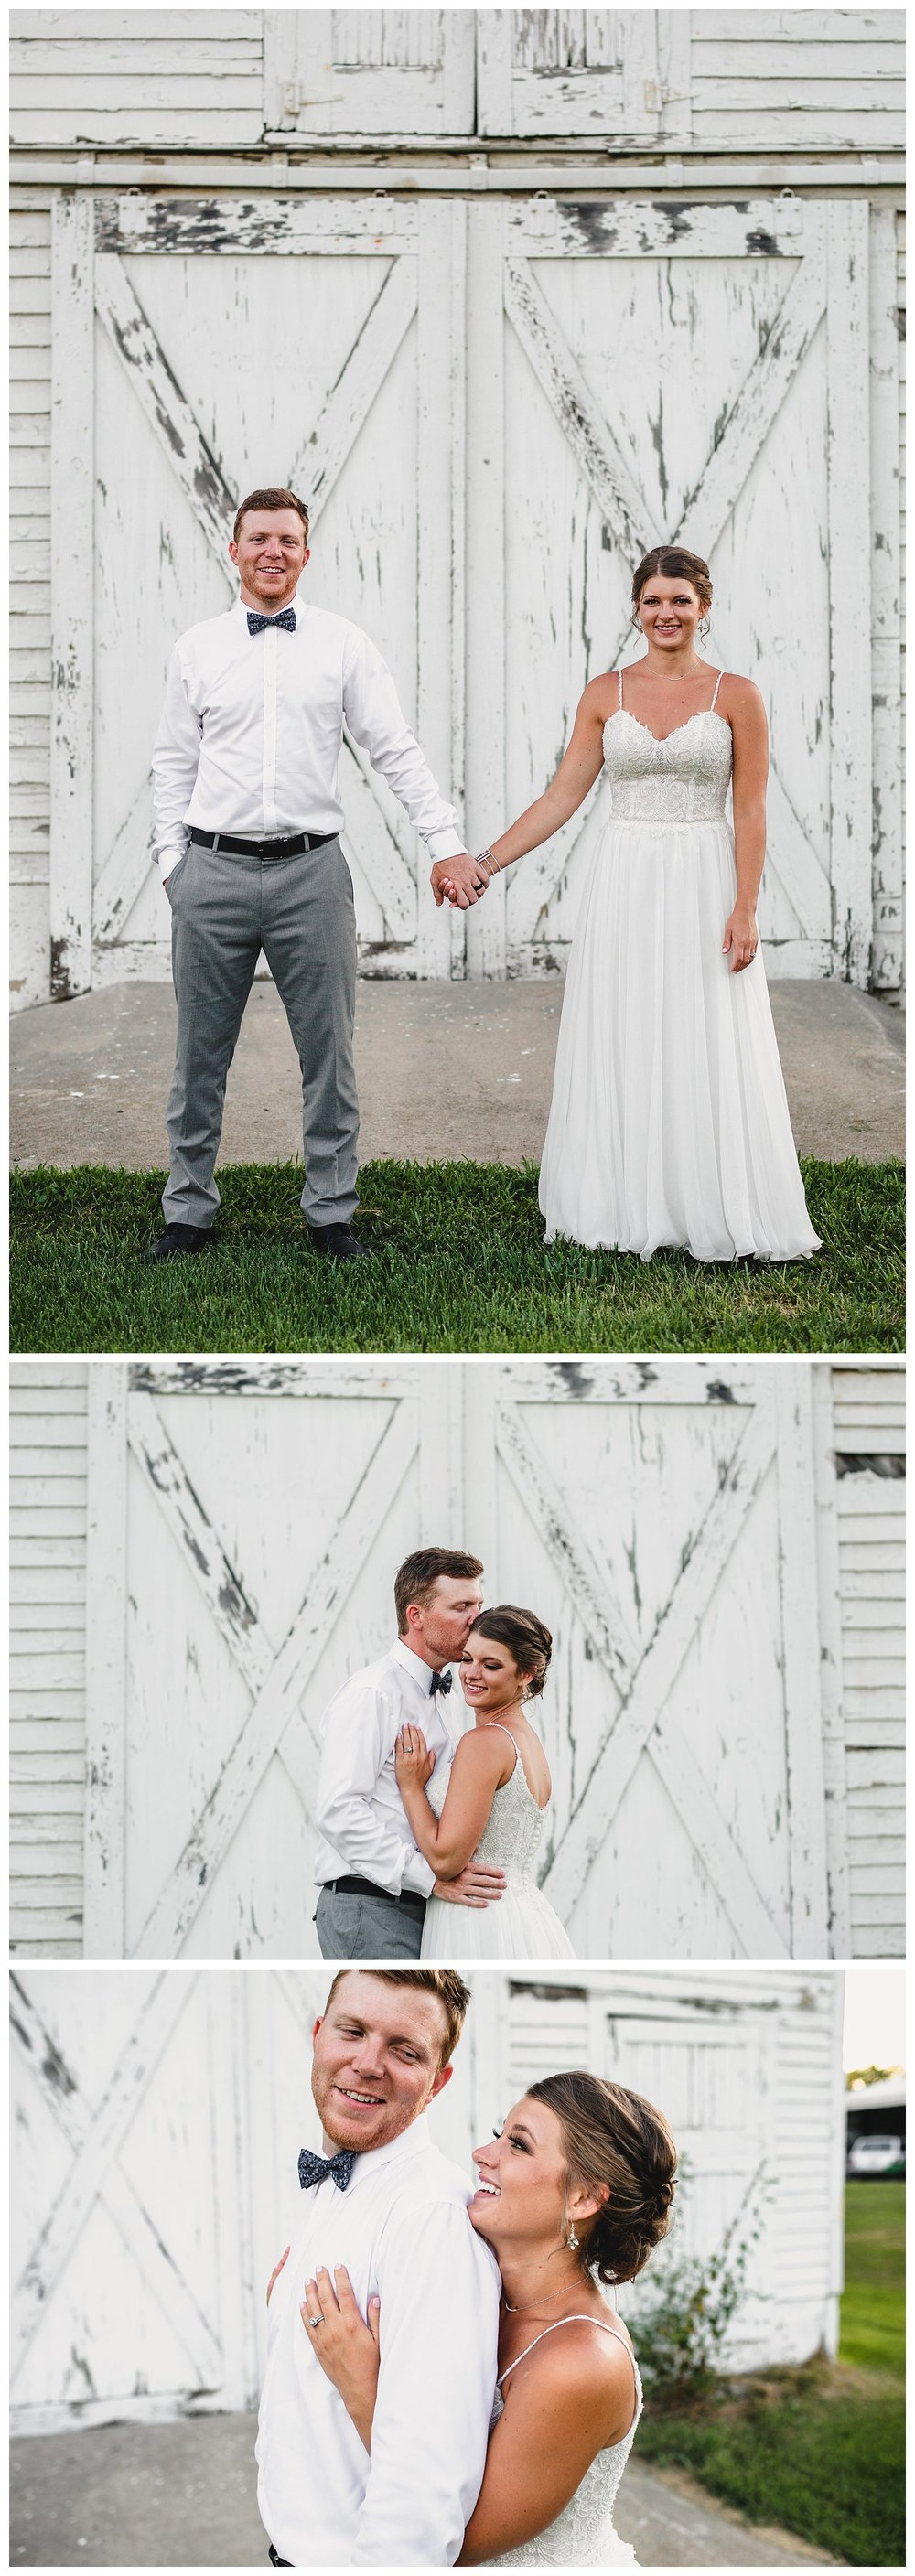 Kelsey_Diane_Photography_Kansas_City_Engagement_Wedding_Photographer_Midwest_Traveling_Missouri_Lee_Andrew_Hall_And_Garden_Blue_Springs_Wedding_Clayton_Kimberly_Summer_Wedding_0862.jpg